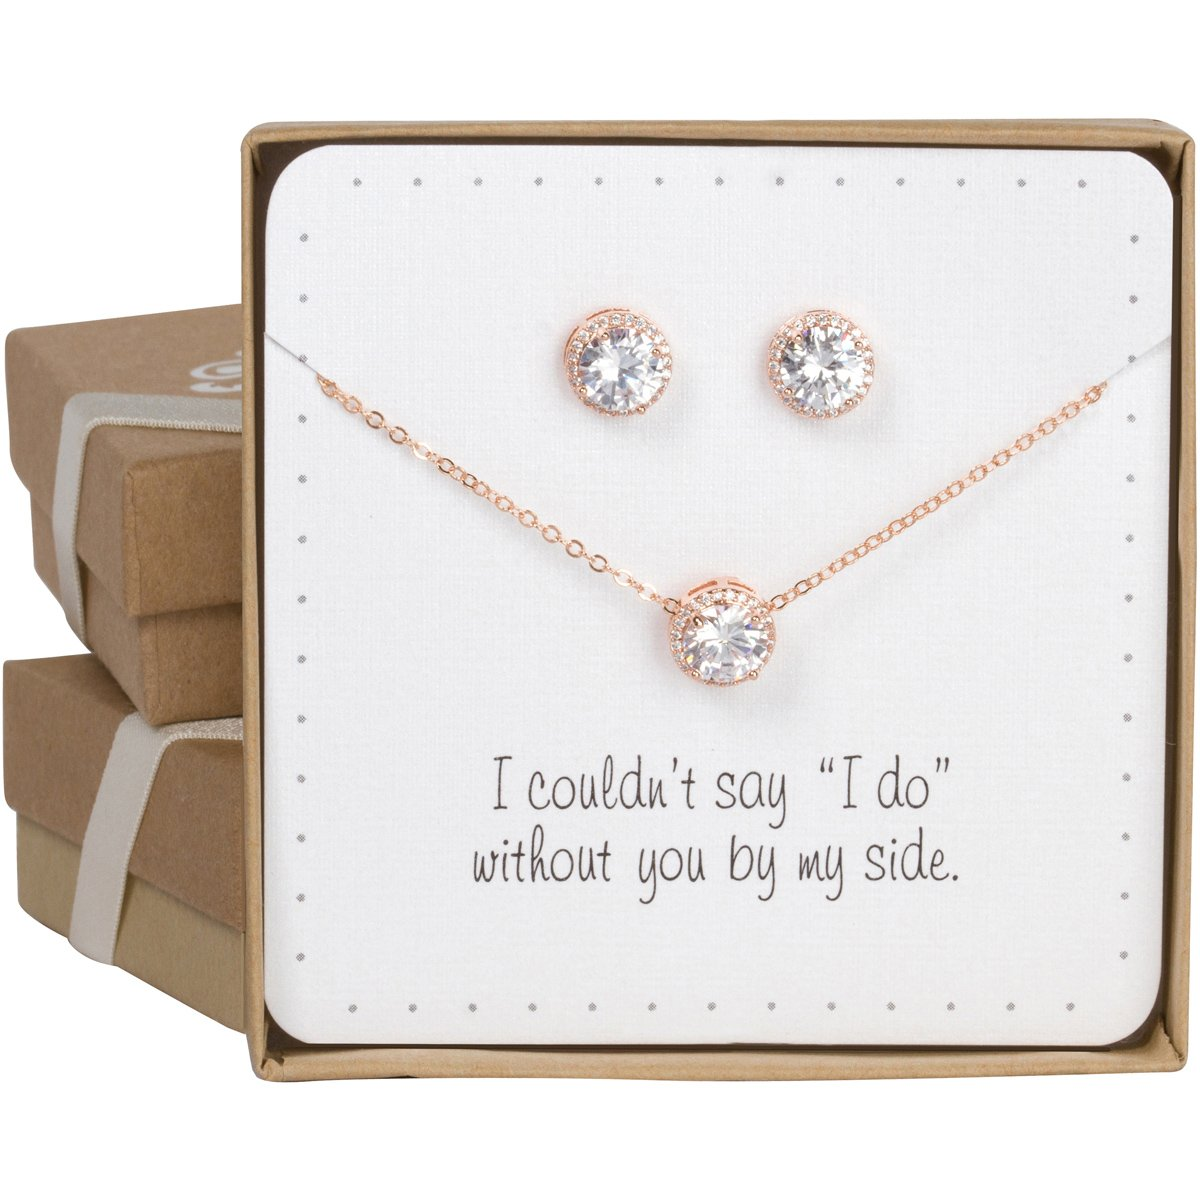 Bridesmaid Gifts - Pretty Halo Cubic-Zirconia Necklace & Earrings Set (18'', Rose gold) by Bride Dazzle (Image #1)